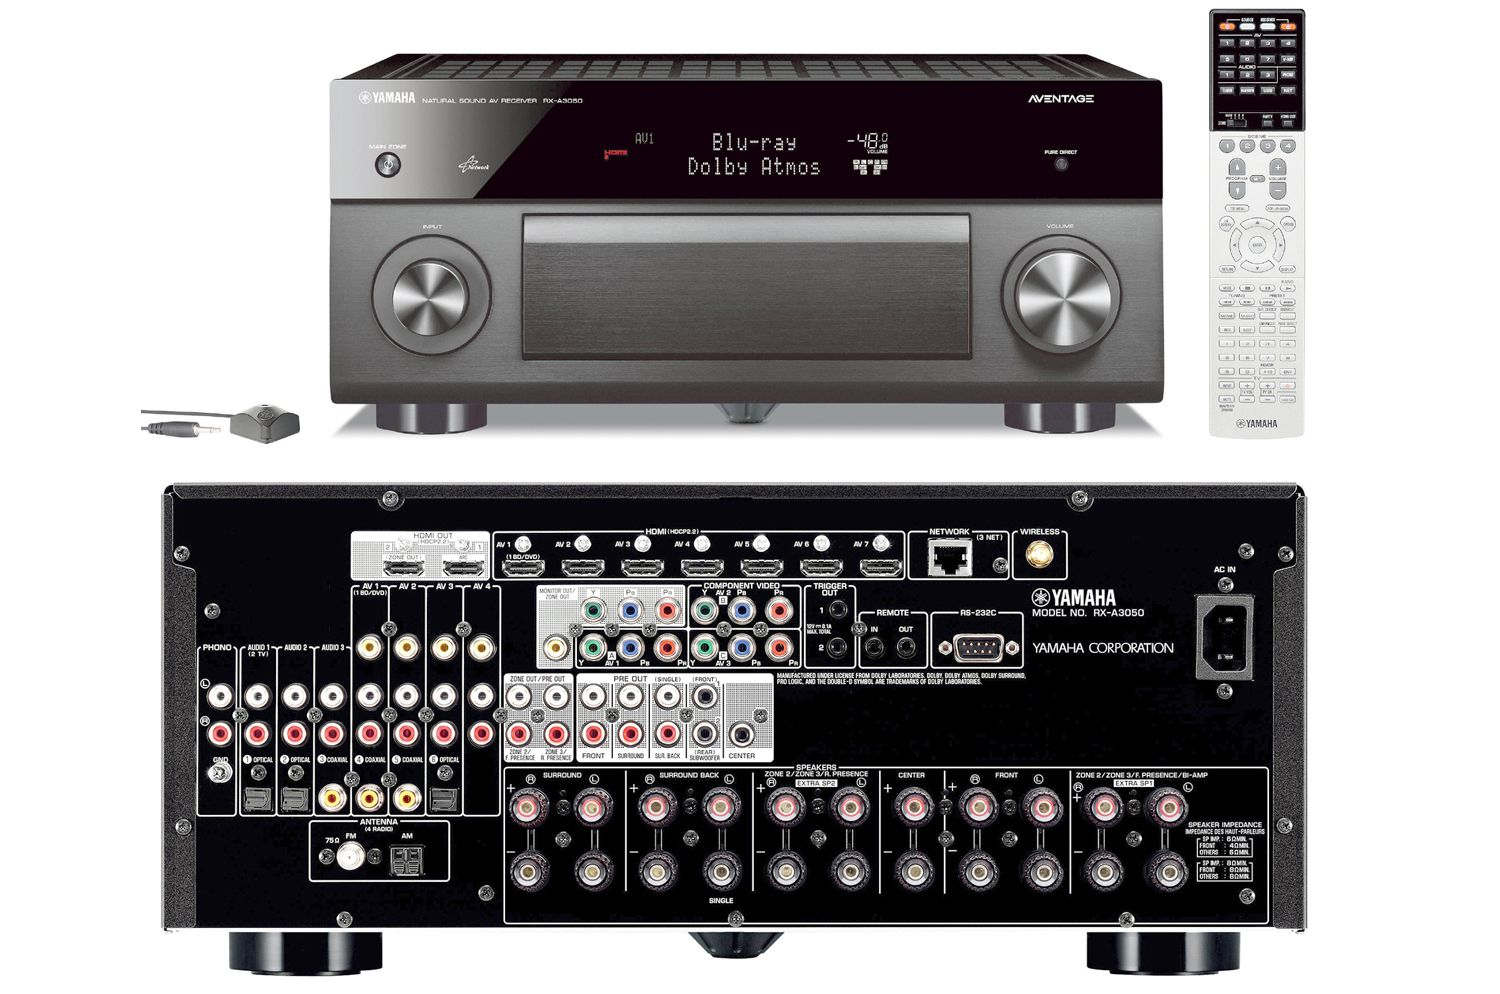 Yamaha Aventage Rx A50 Series Ht Receivers Product Profile